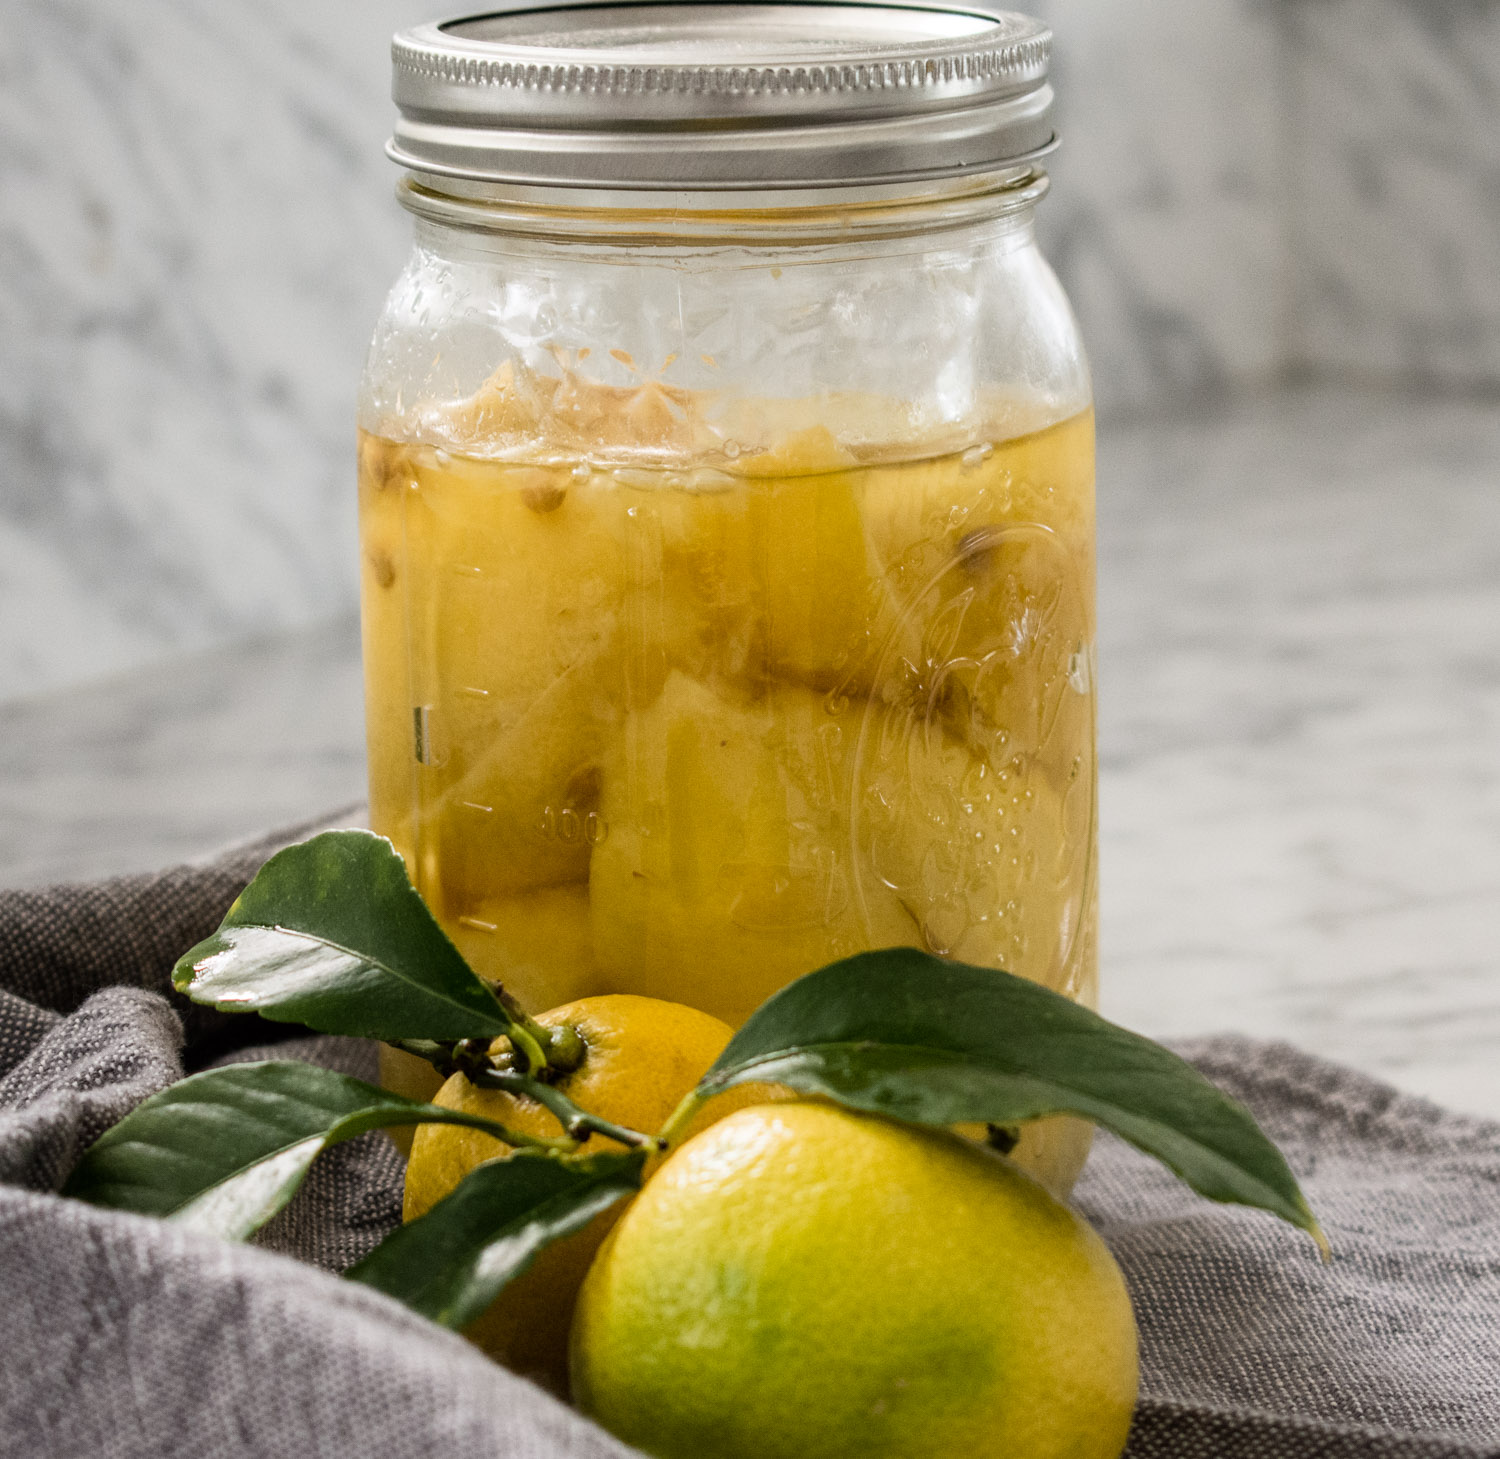 Finished lemons ready to use in cooking.